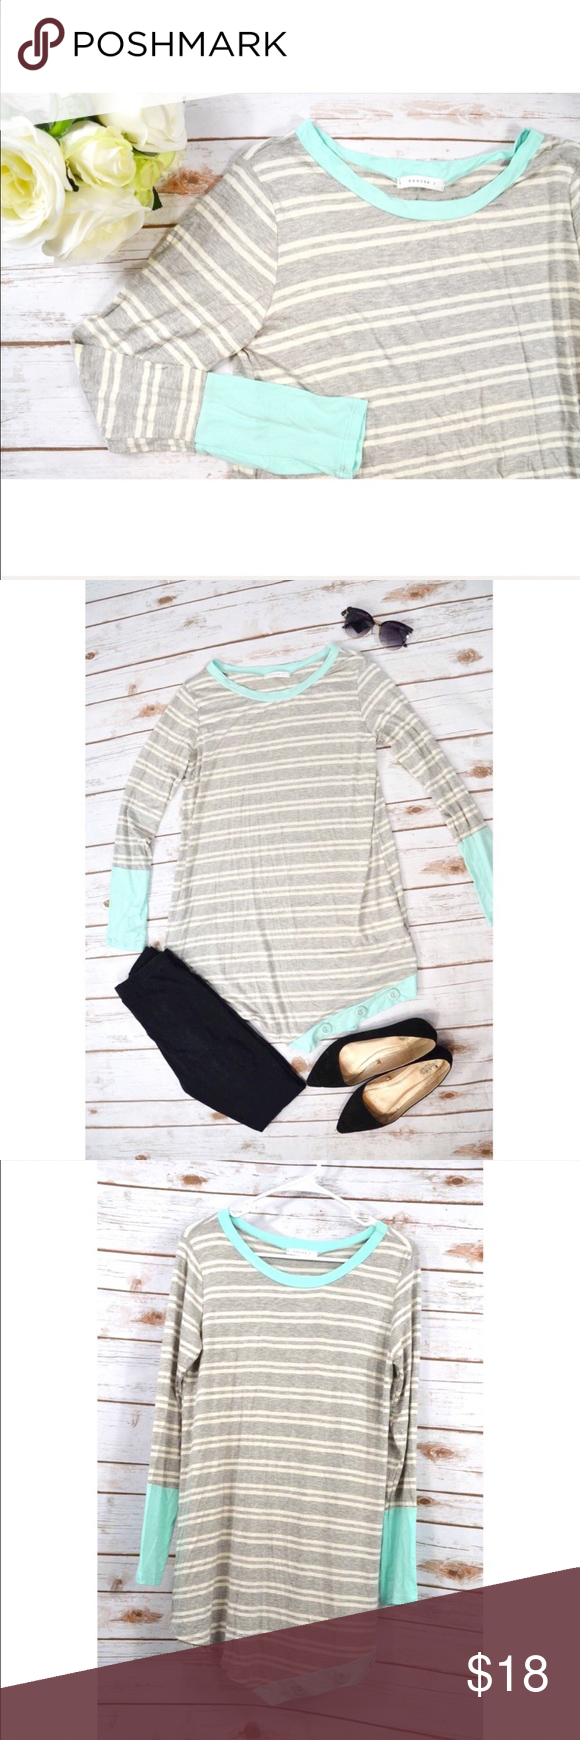 """🌸 Stripes & Buttons Tunic 🌸 This tunic is so cute & perfect for Spring! Both flowy & comfy! Has button accents along the bottom front. Long sleeves, grey & white stripes with pastel teal accents & neckline. Loose fit. Size LARGE.   🌸Bust: 36"""" 🌸Waist: 44"""" ❌ NO TRADES 🌸 Bundle to SAVE 💸 Tops Tunics"""